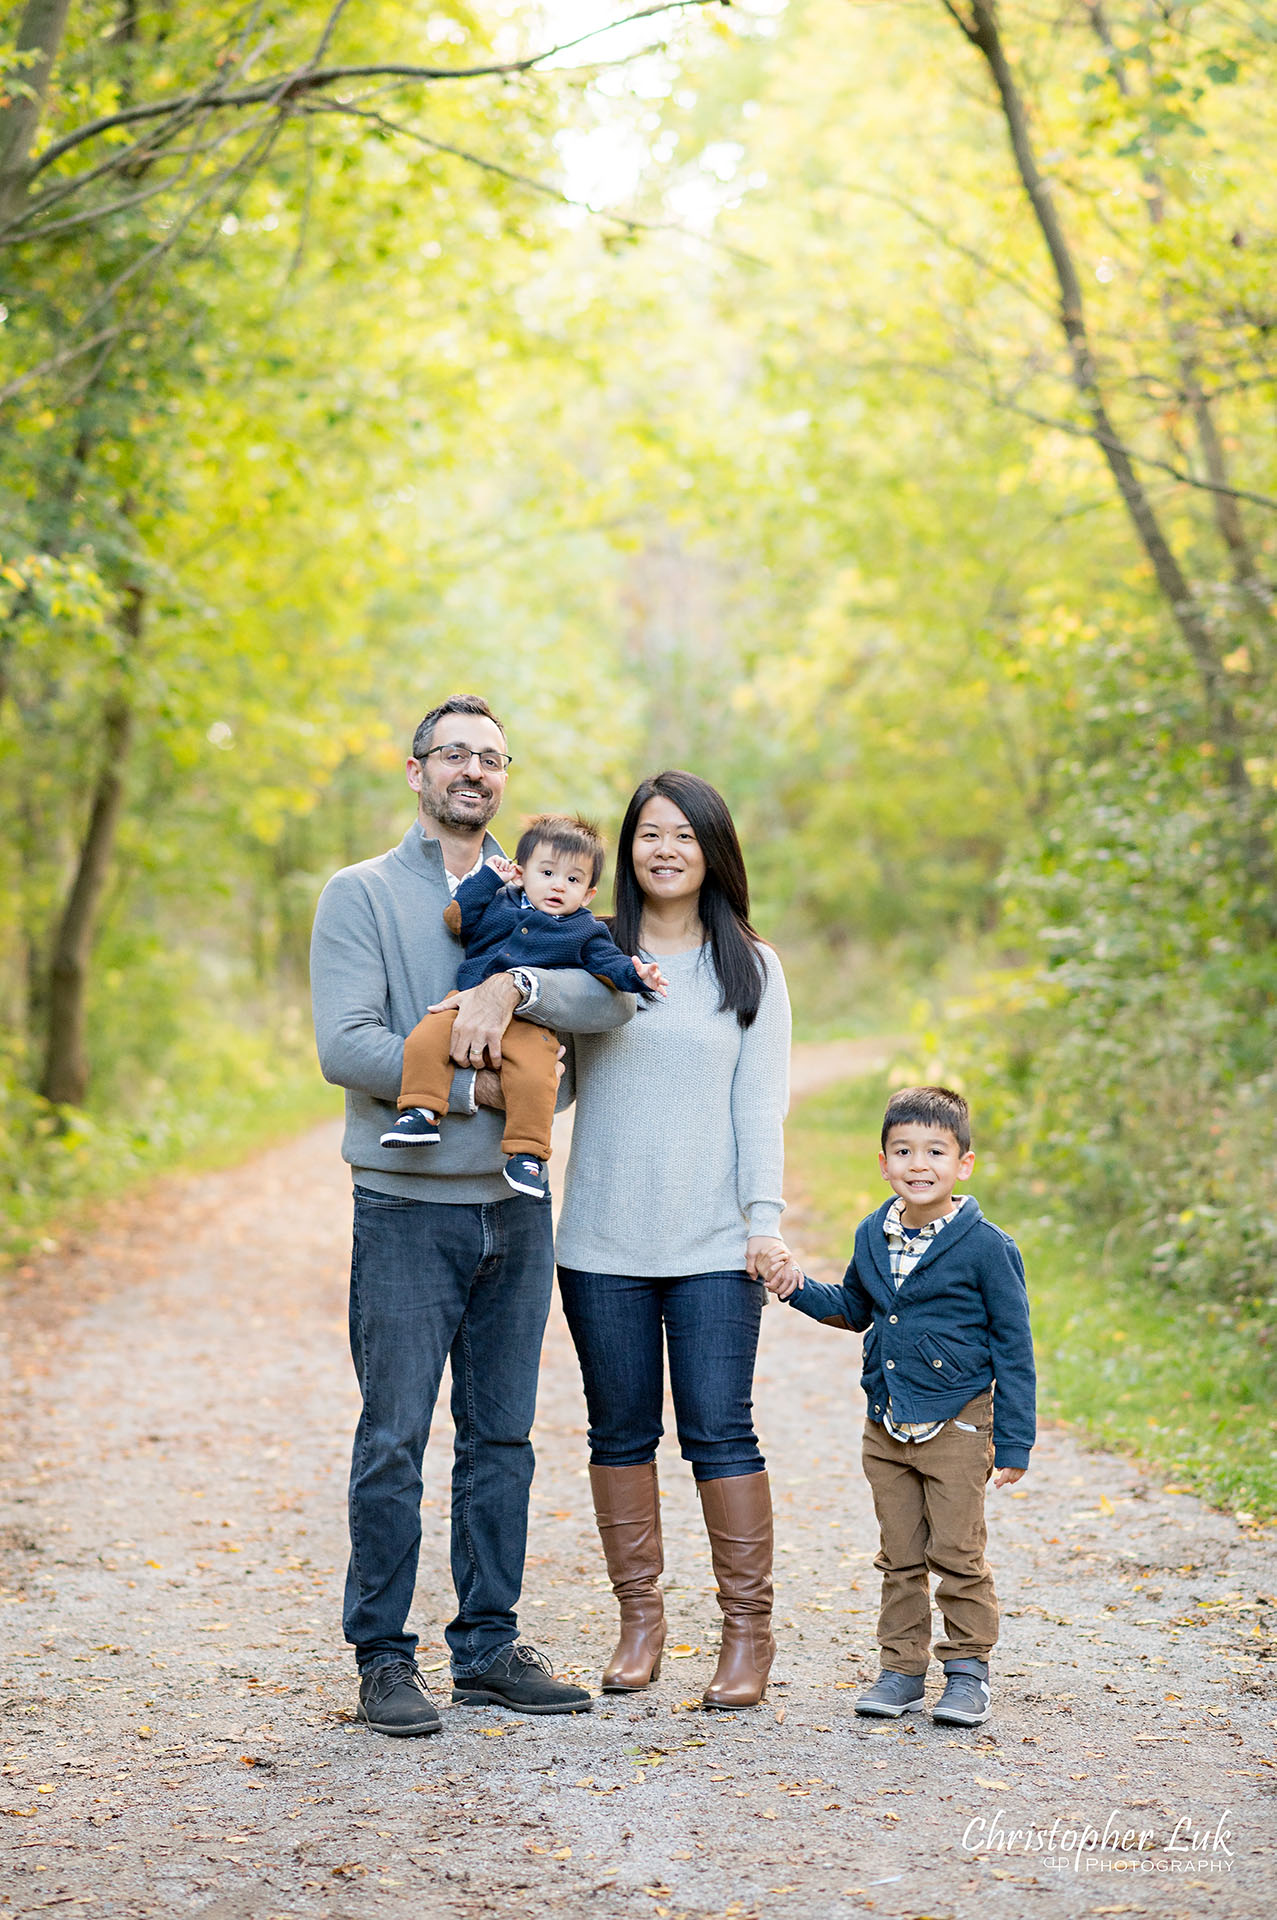 Christopher Luk Family Photographer Toronto Markham Unionville Autumn Fall Leaves Natural Candid Photojournalistic Sons Brothers Baby Boys Father Dad Mother Mom Motherhood Fatherhood Holding Hands Walking Together Trail Pathway Forest Smile